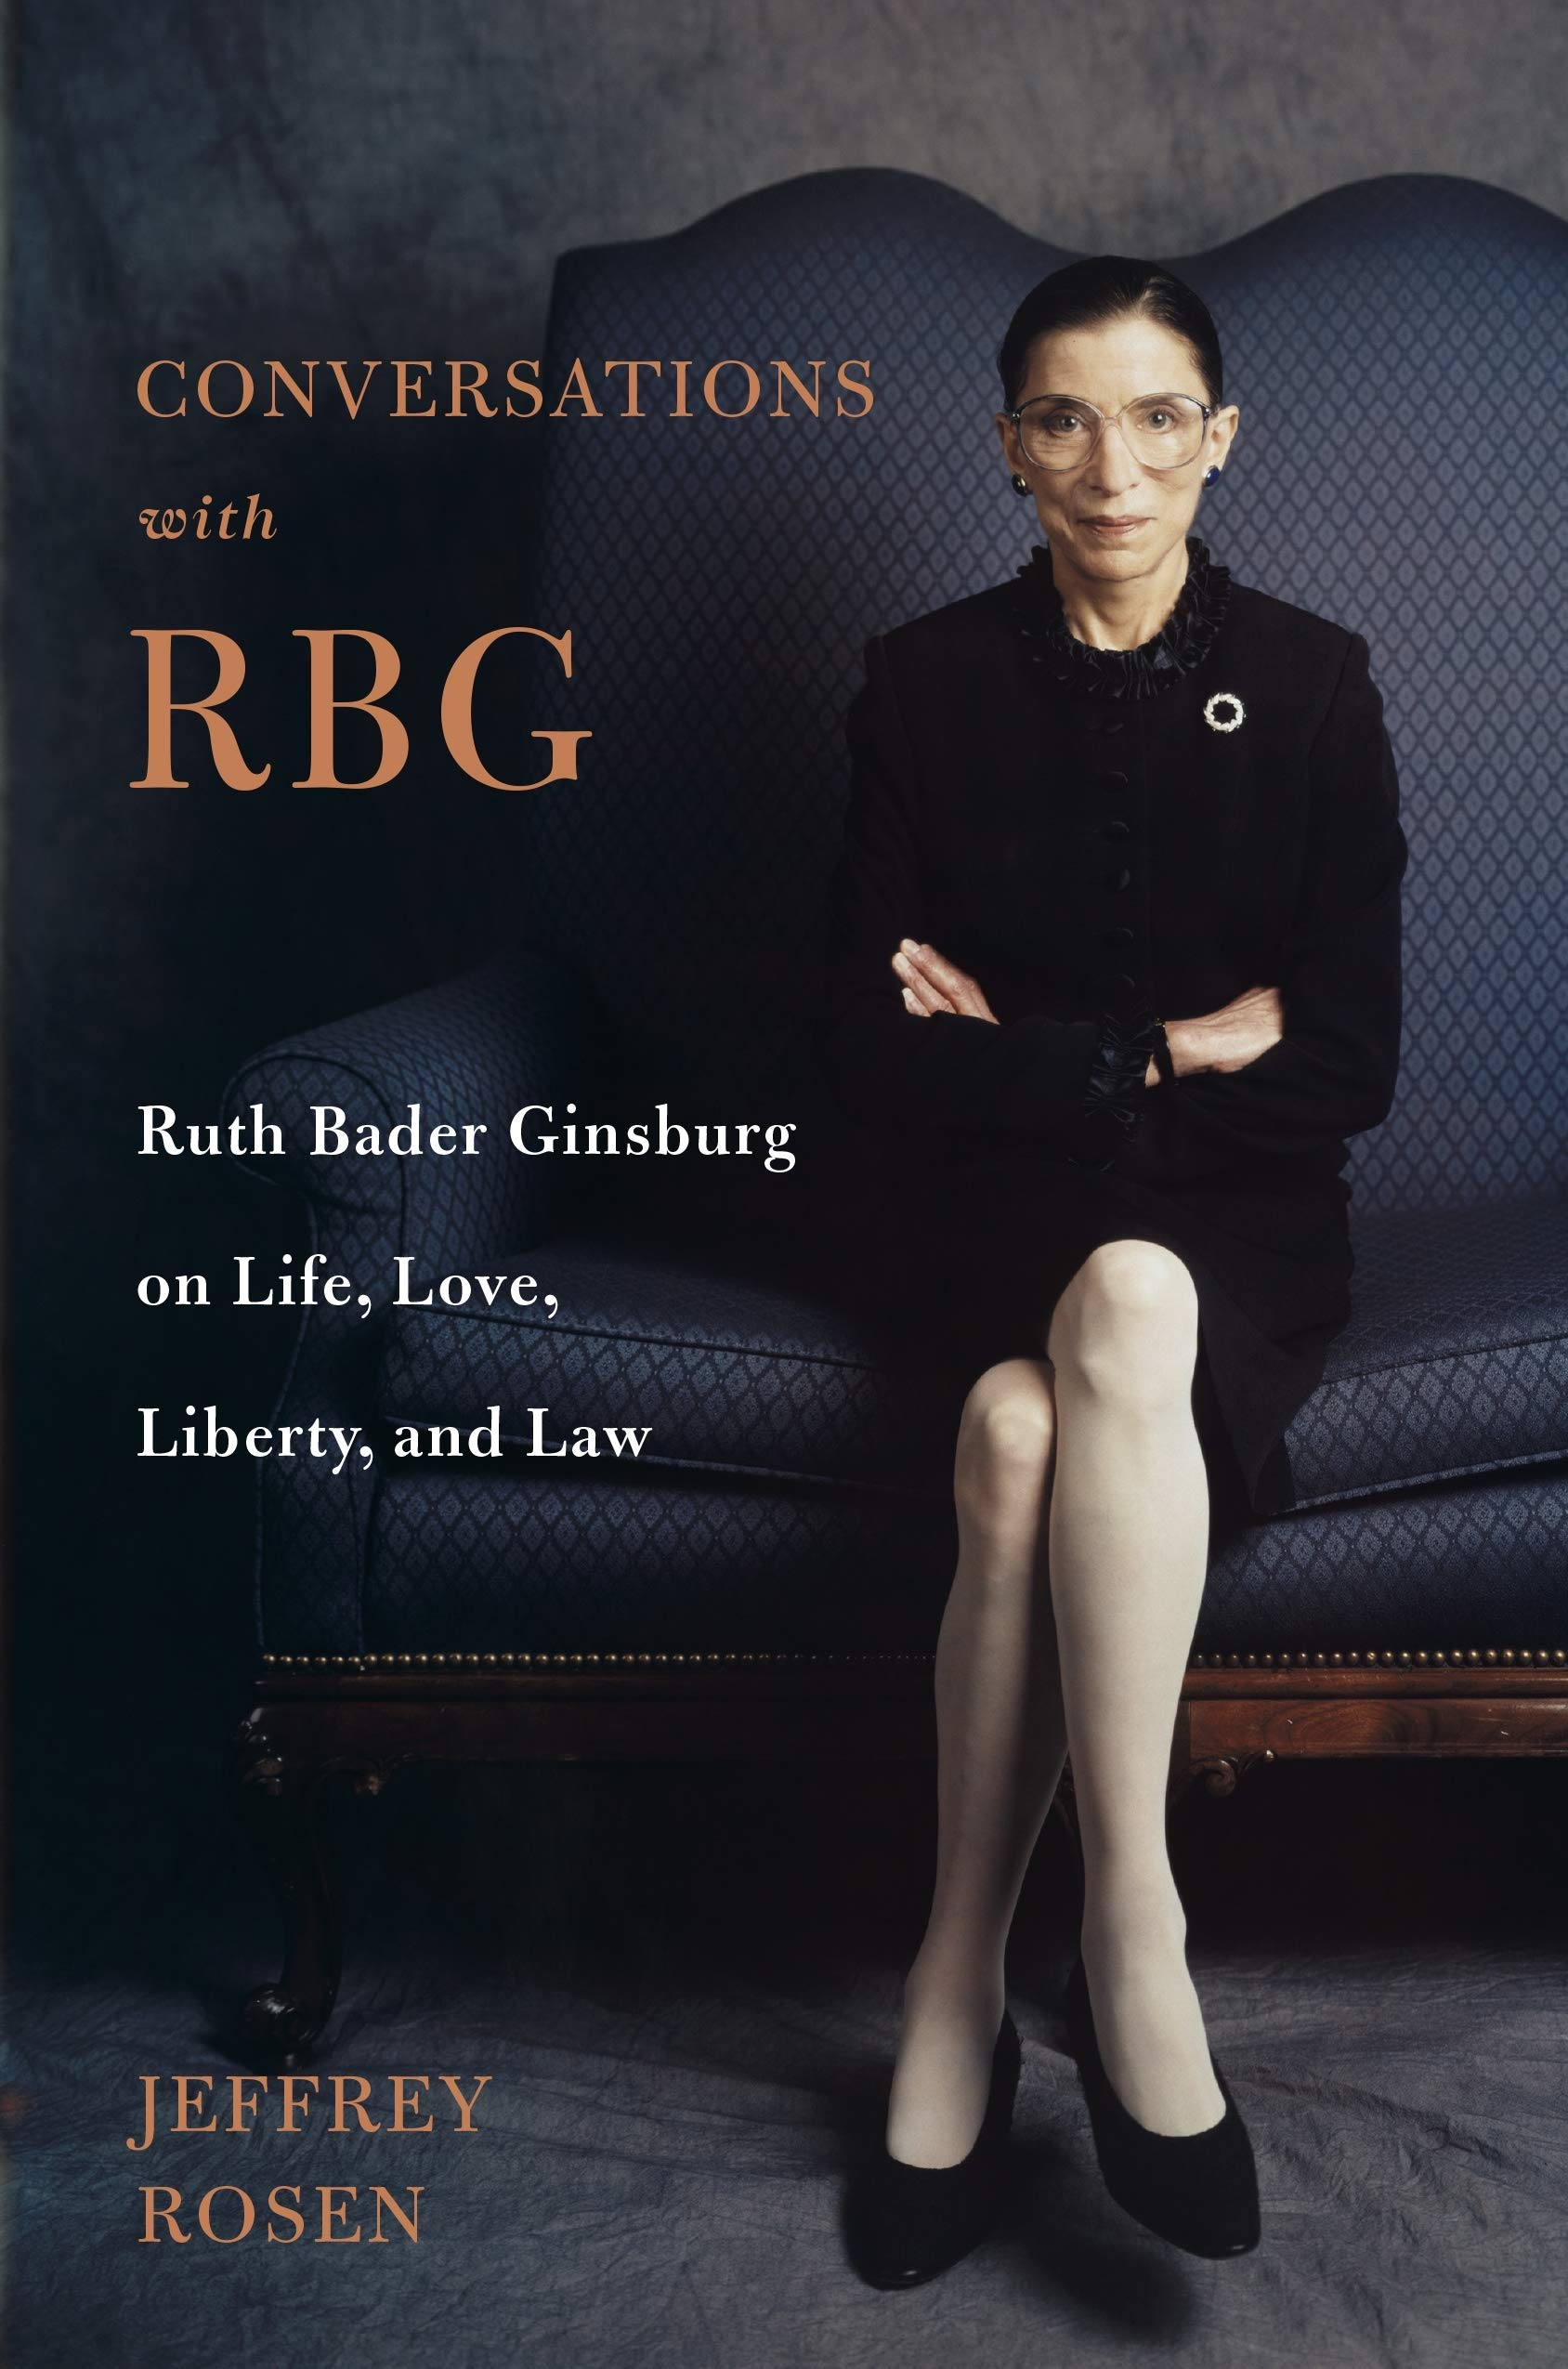 Rest In Power Justice Ruth Bader Ginsburg